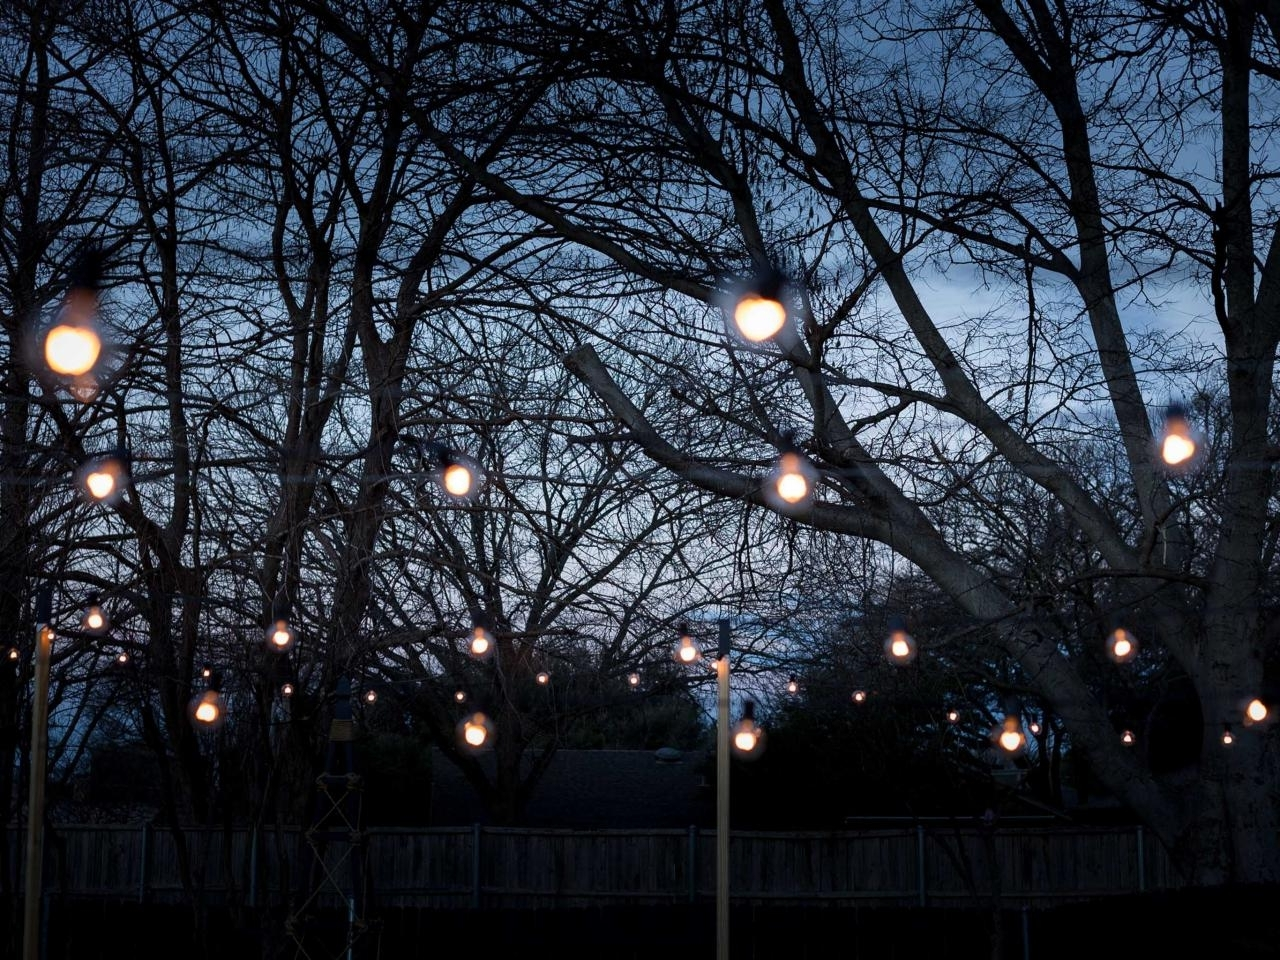 Hgtv With Regard To Well Known Hanging Outdoor Lights On Trees (View 13 of 20)